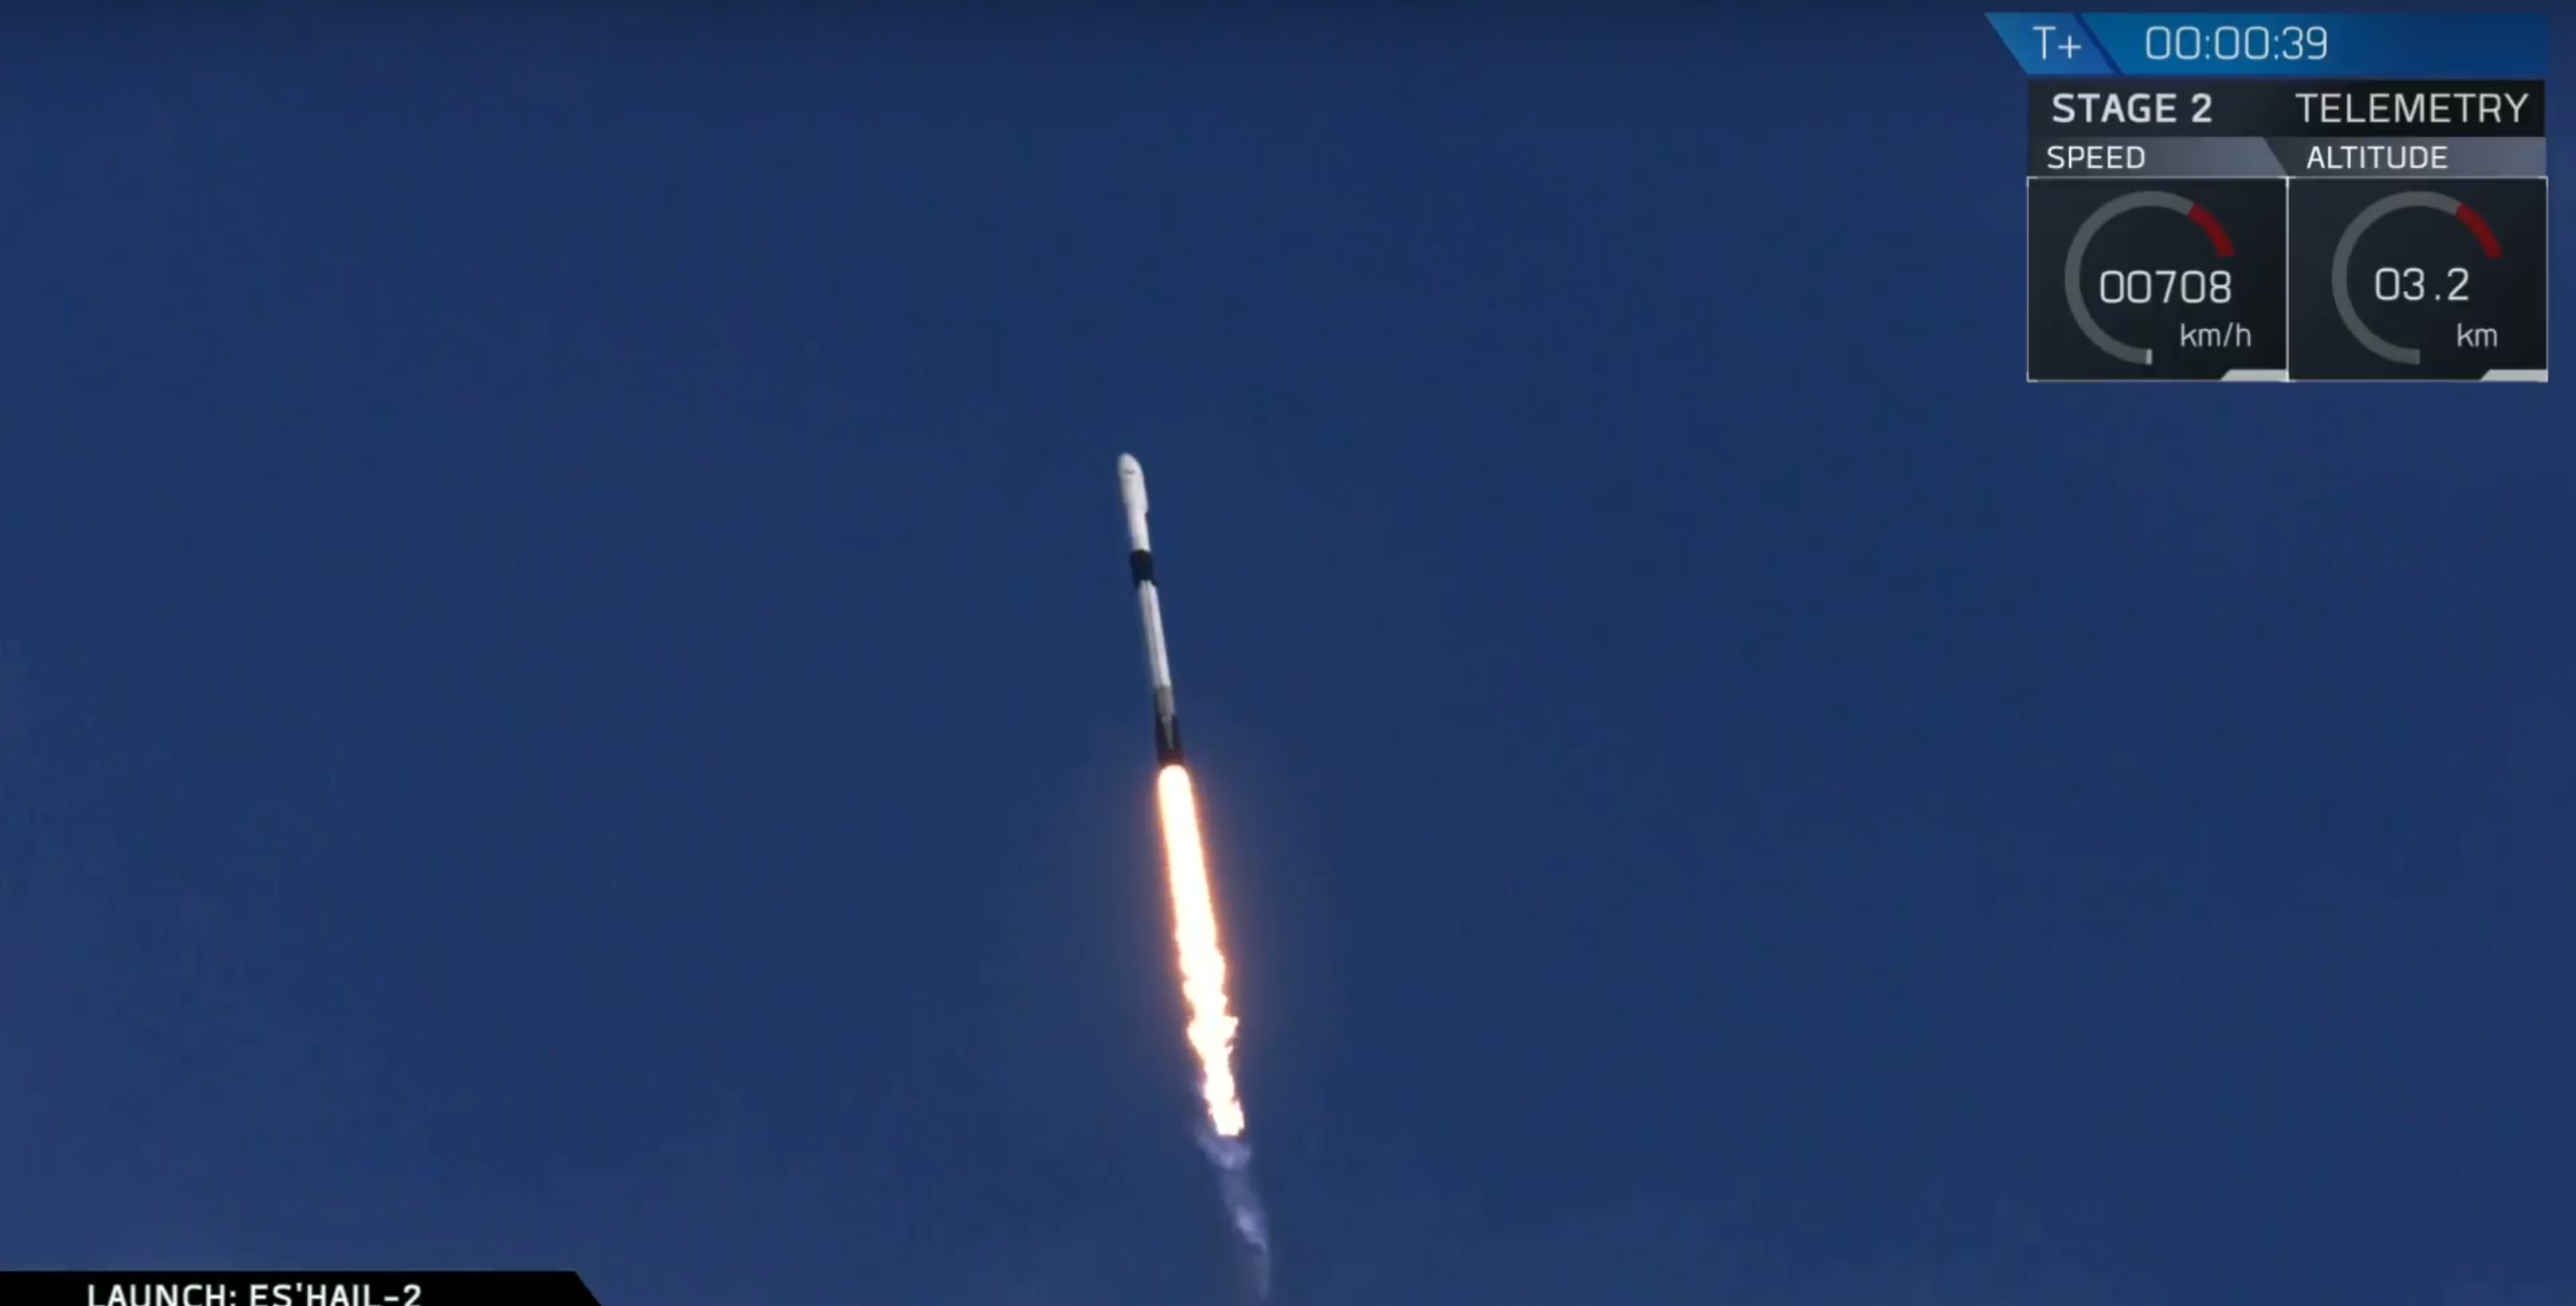 B1047.2 liftoff (SpaceX) 2